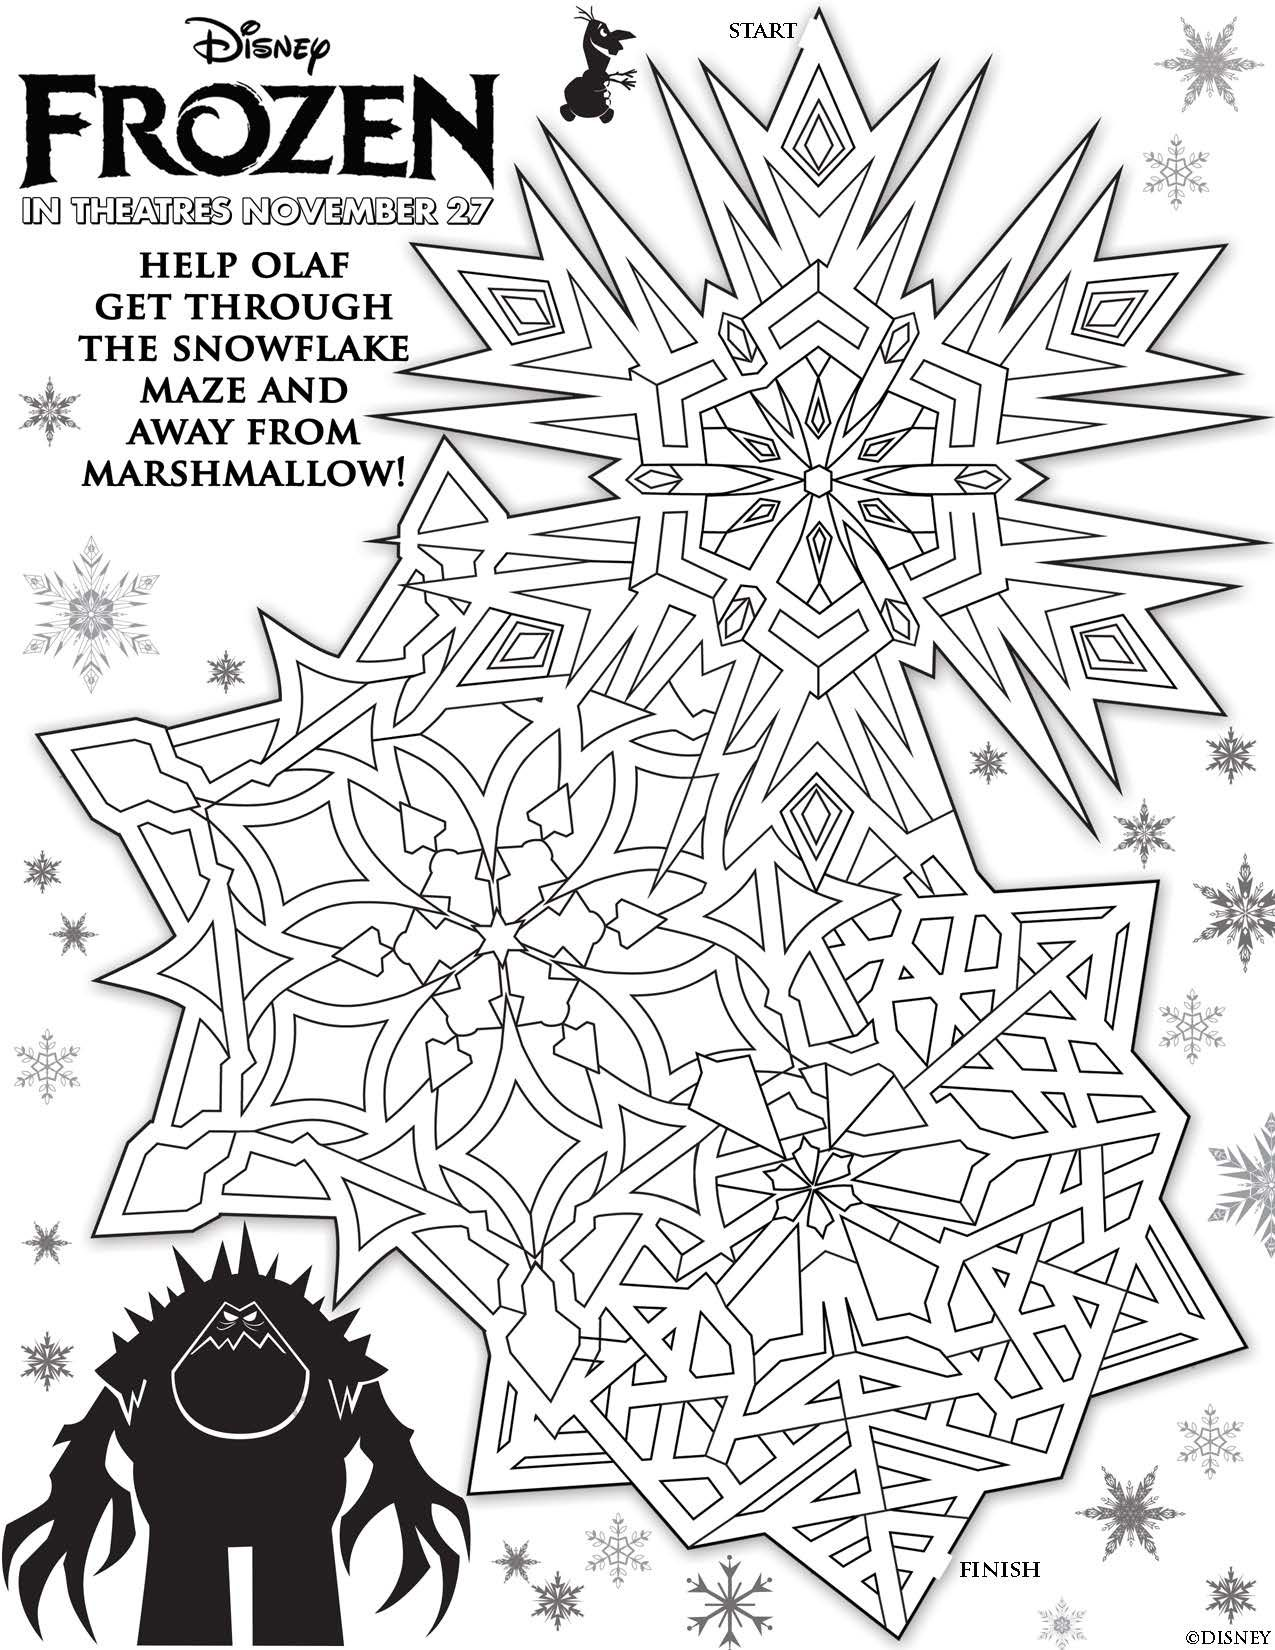 Coloring pages for frozen printable - Disney S Frozen Printables Coloring Pages And Storybook App